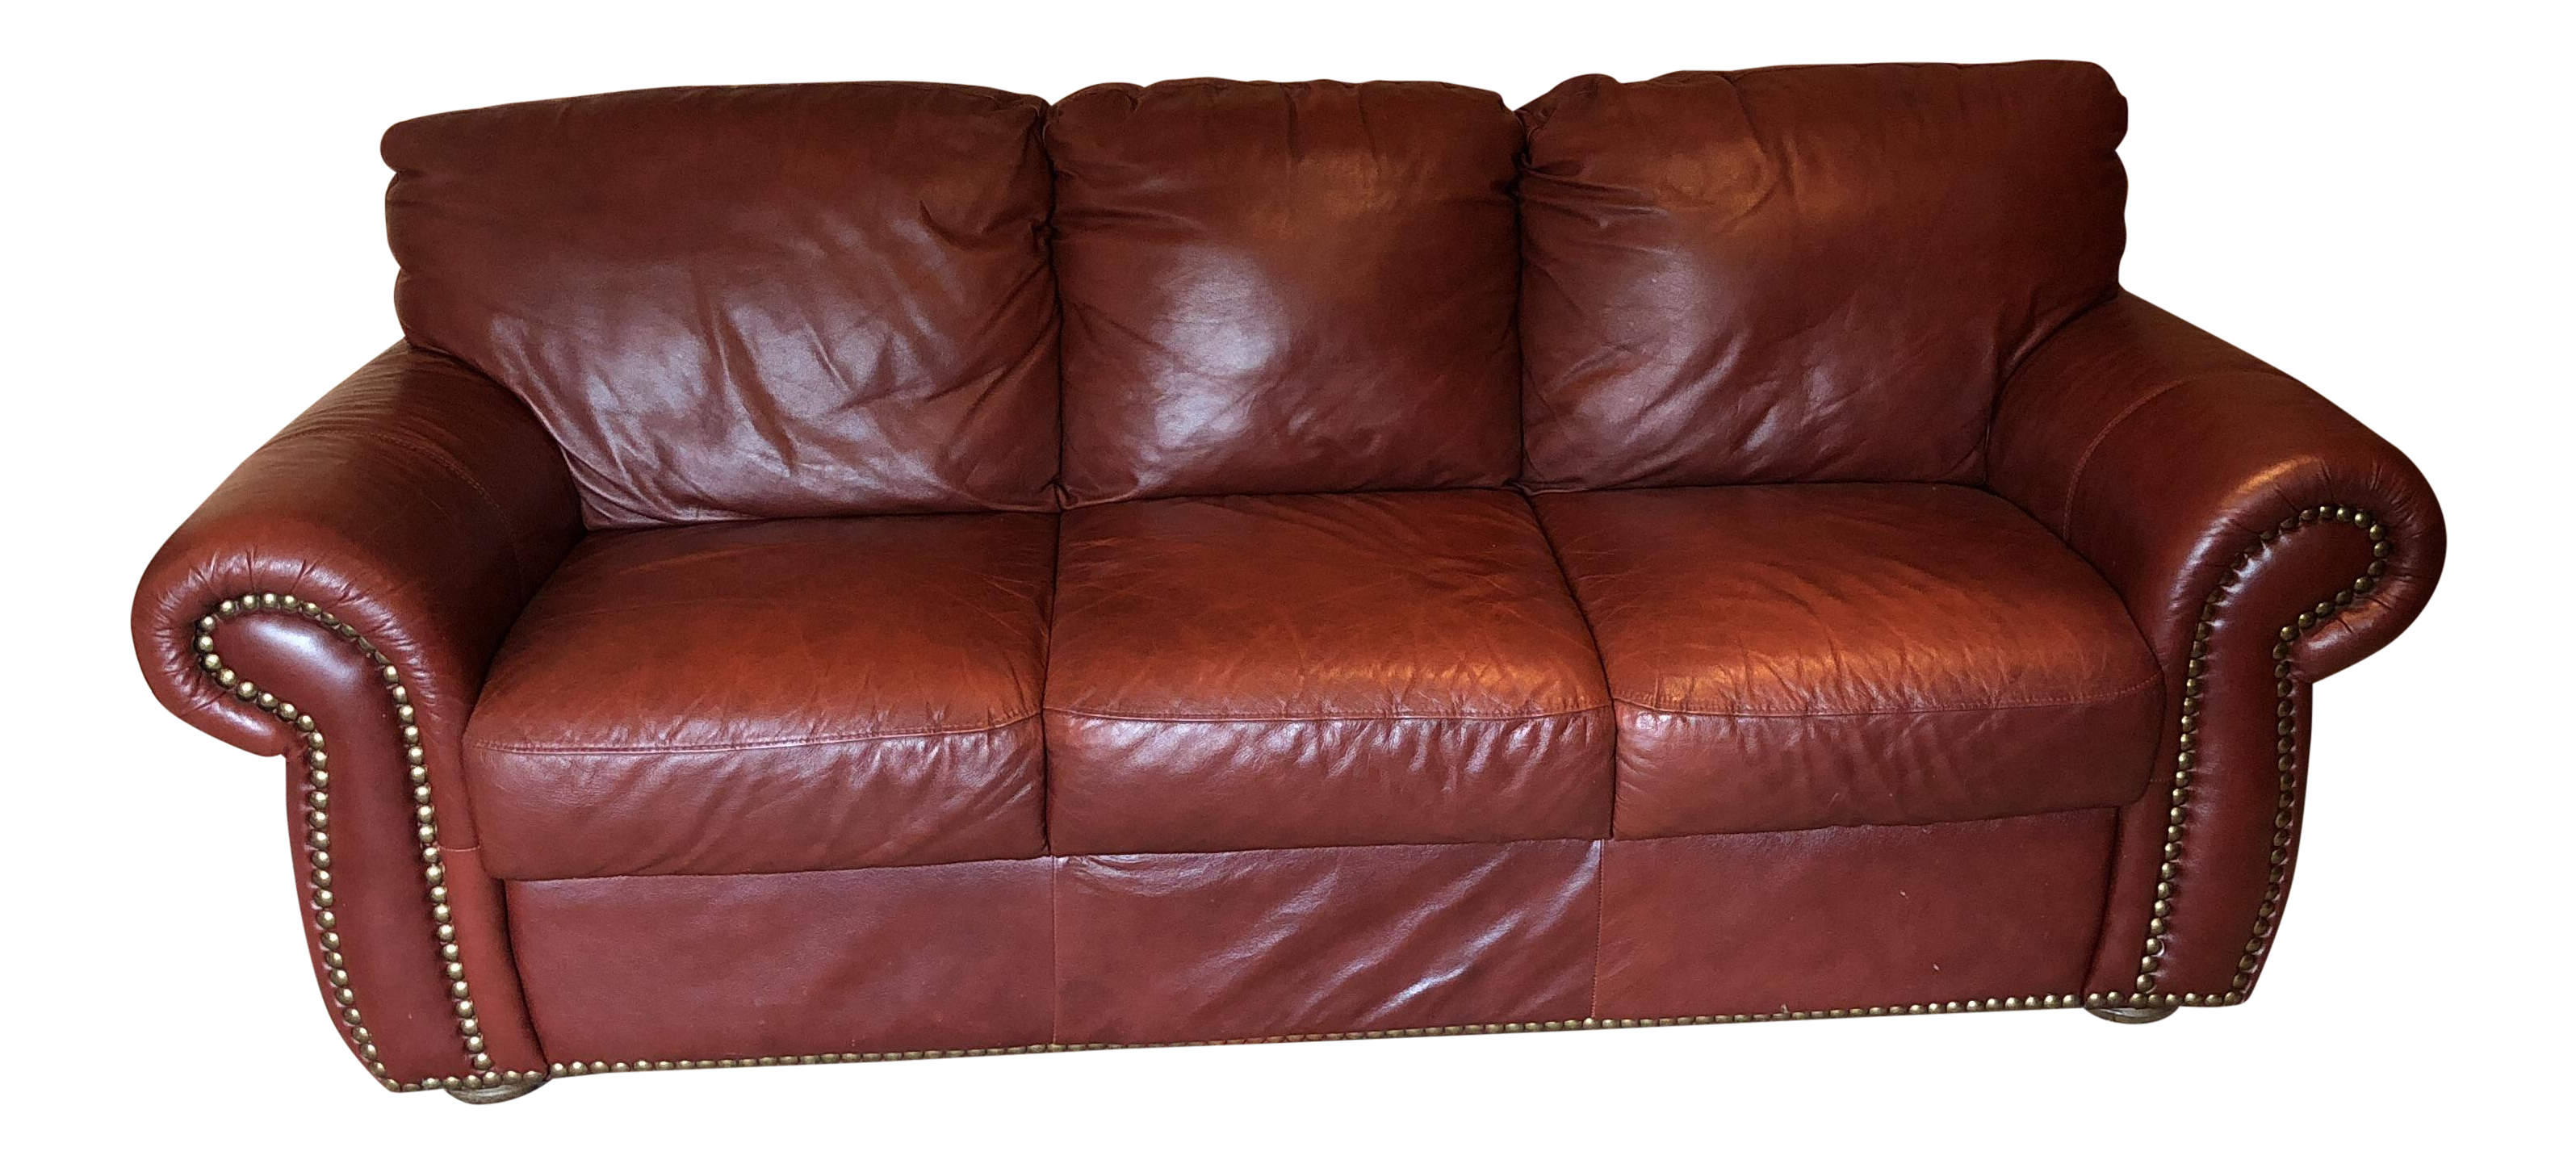 Chateau D Ax Divani Italian Red Leather Sofa